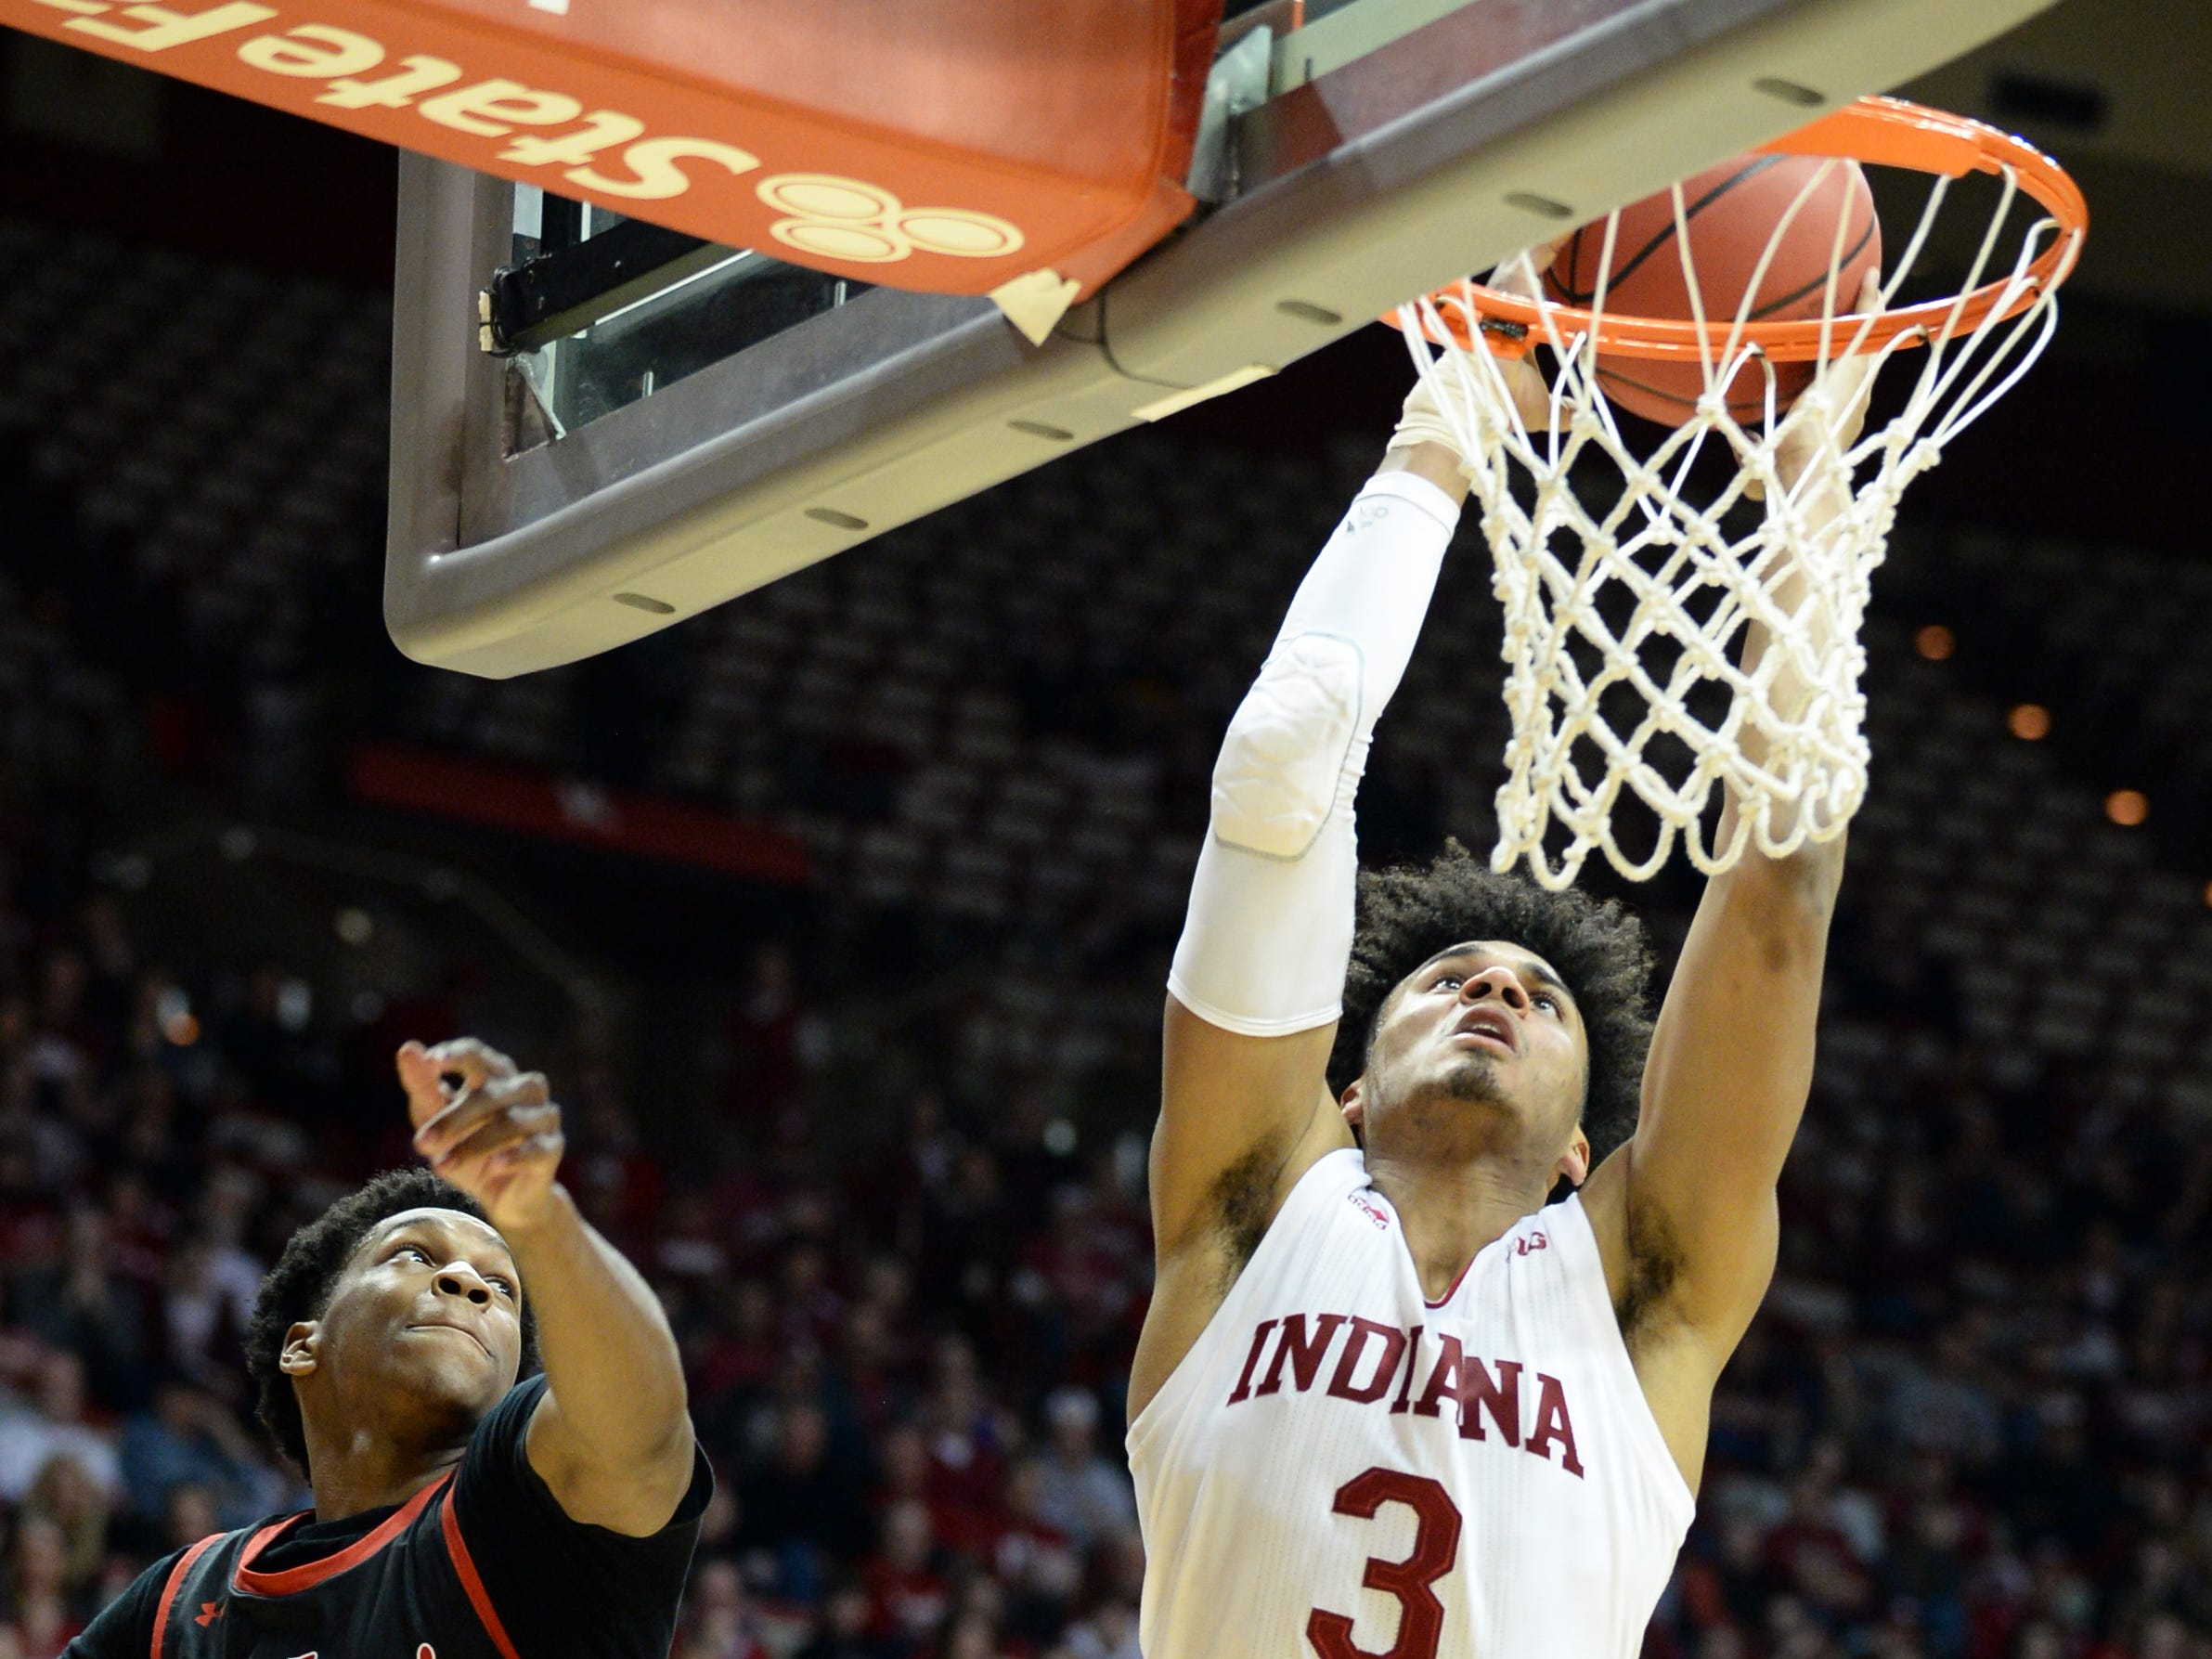 Indiana Hoosiers forward Justin Smith (3) dunks the ball during the game against St. Francis (Pa.) at Simon Skjodt Assembly Hall in Bloomington Ind., on Tuesday, March 19, 2019.